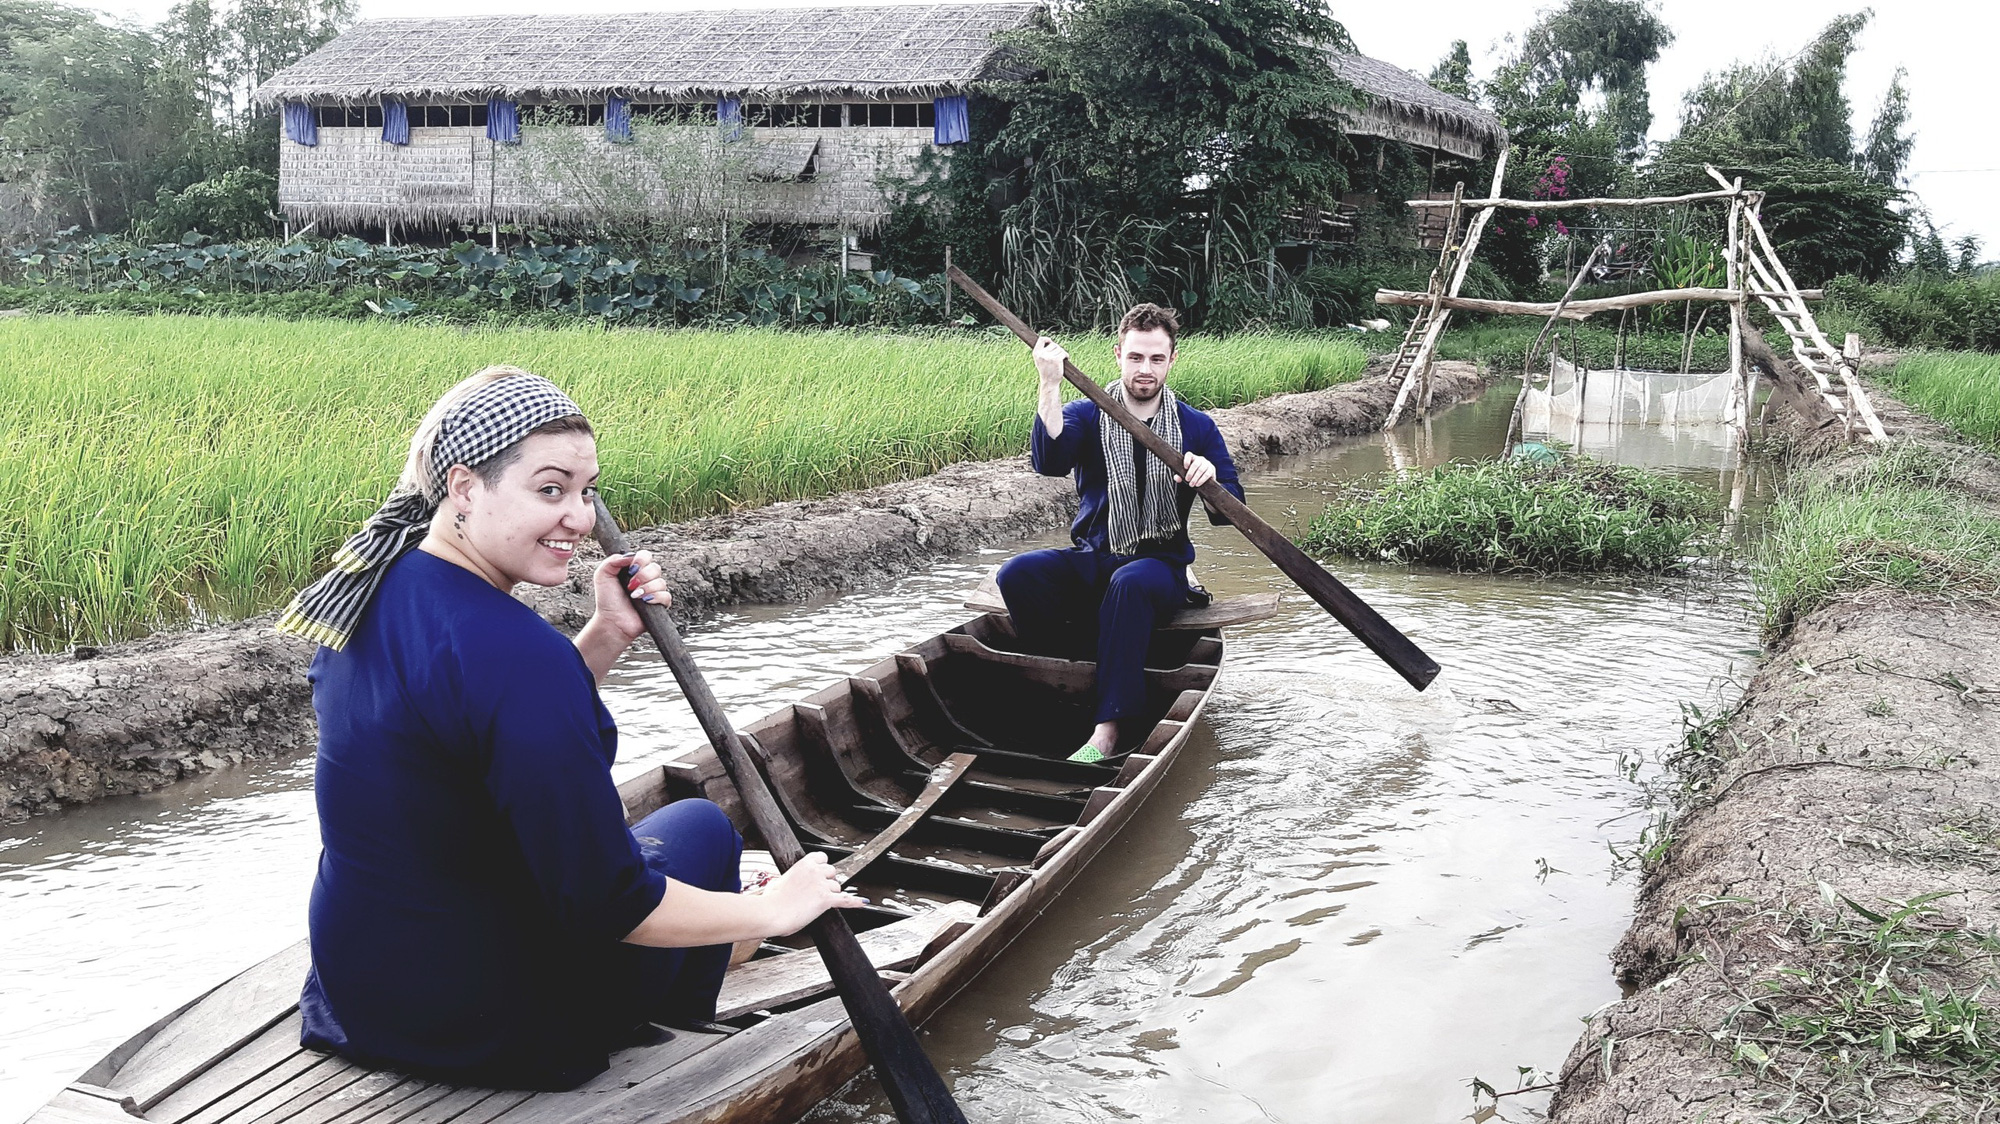 Two foreign tourists indulge themselves in rustic delights at Viet Mekong Farmstay, nestled in Tam Nong District, Dong Thap Province in Vietnam's Mekong Delta, in this provided photo.